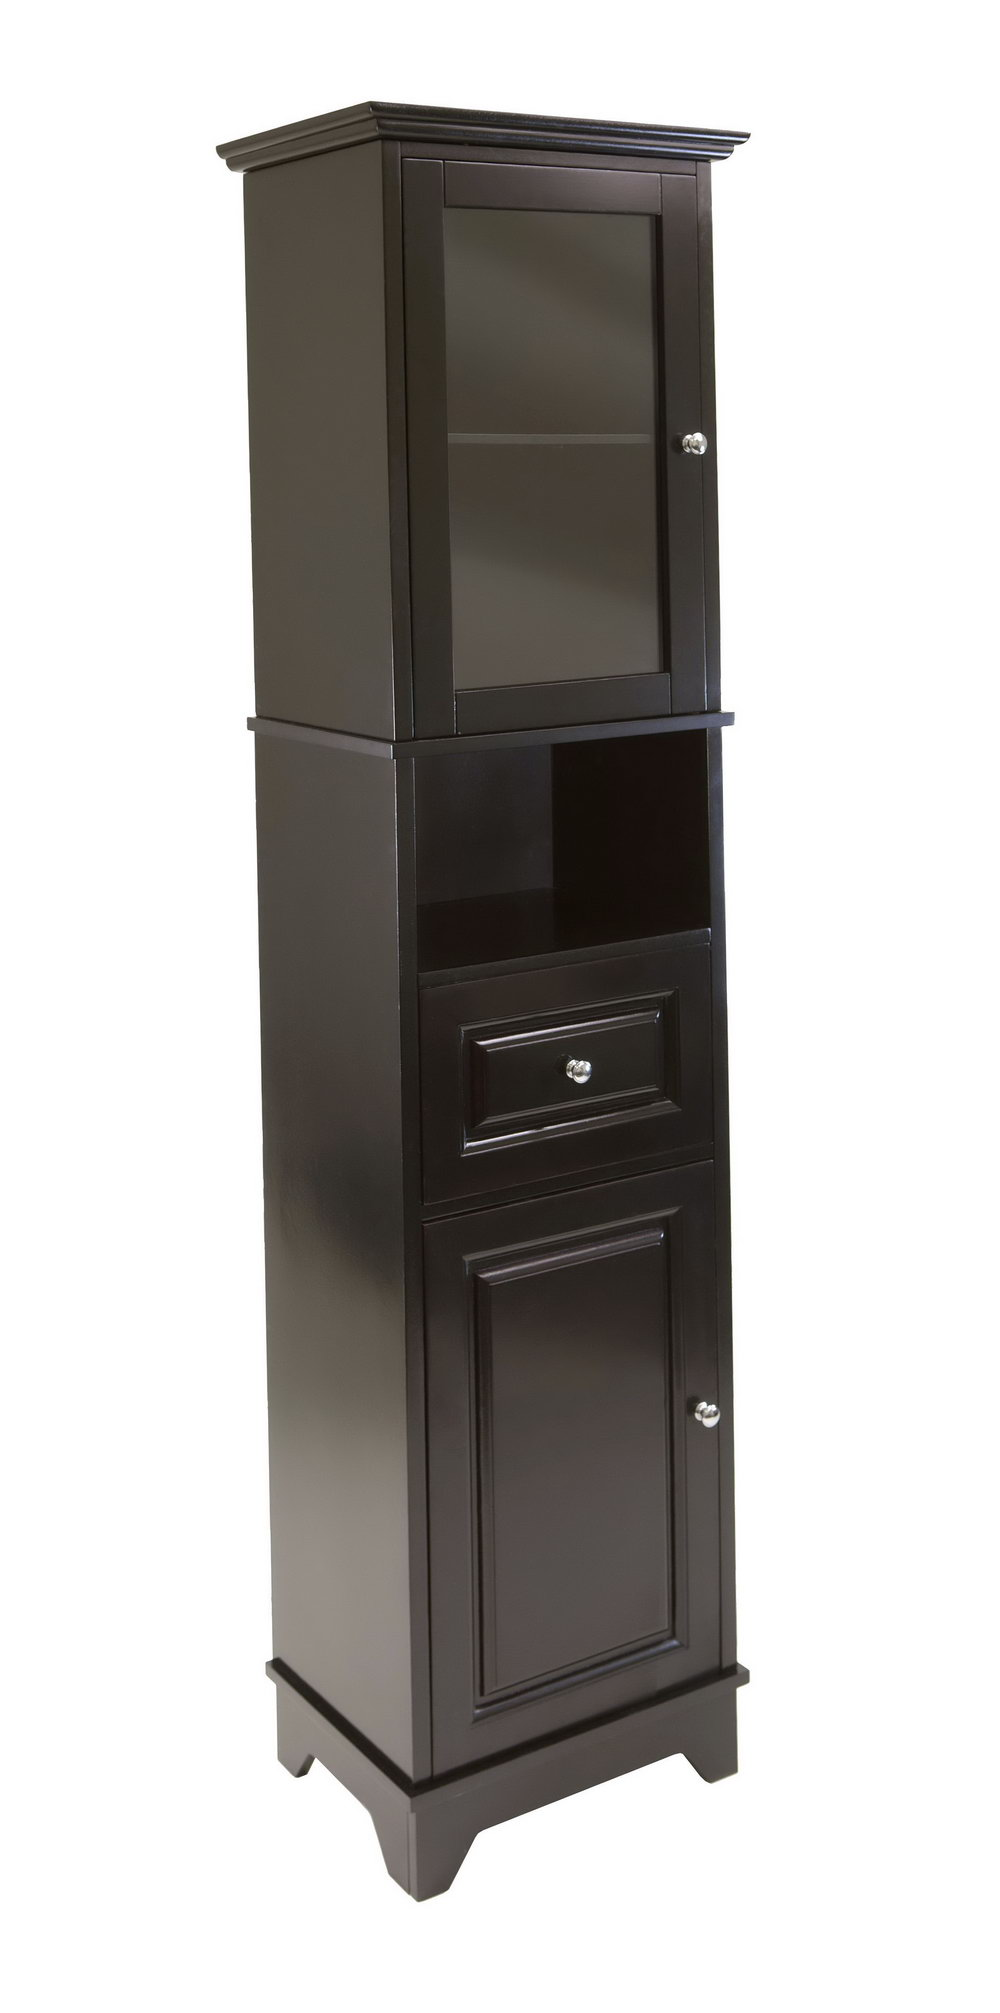 Tall Black Storage Cabinet With Doors